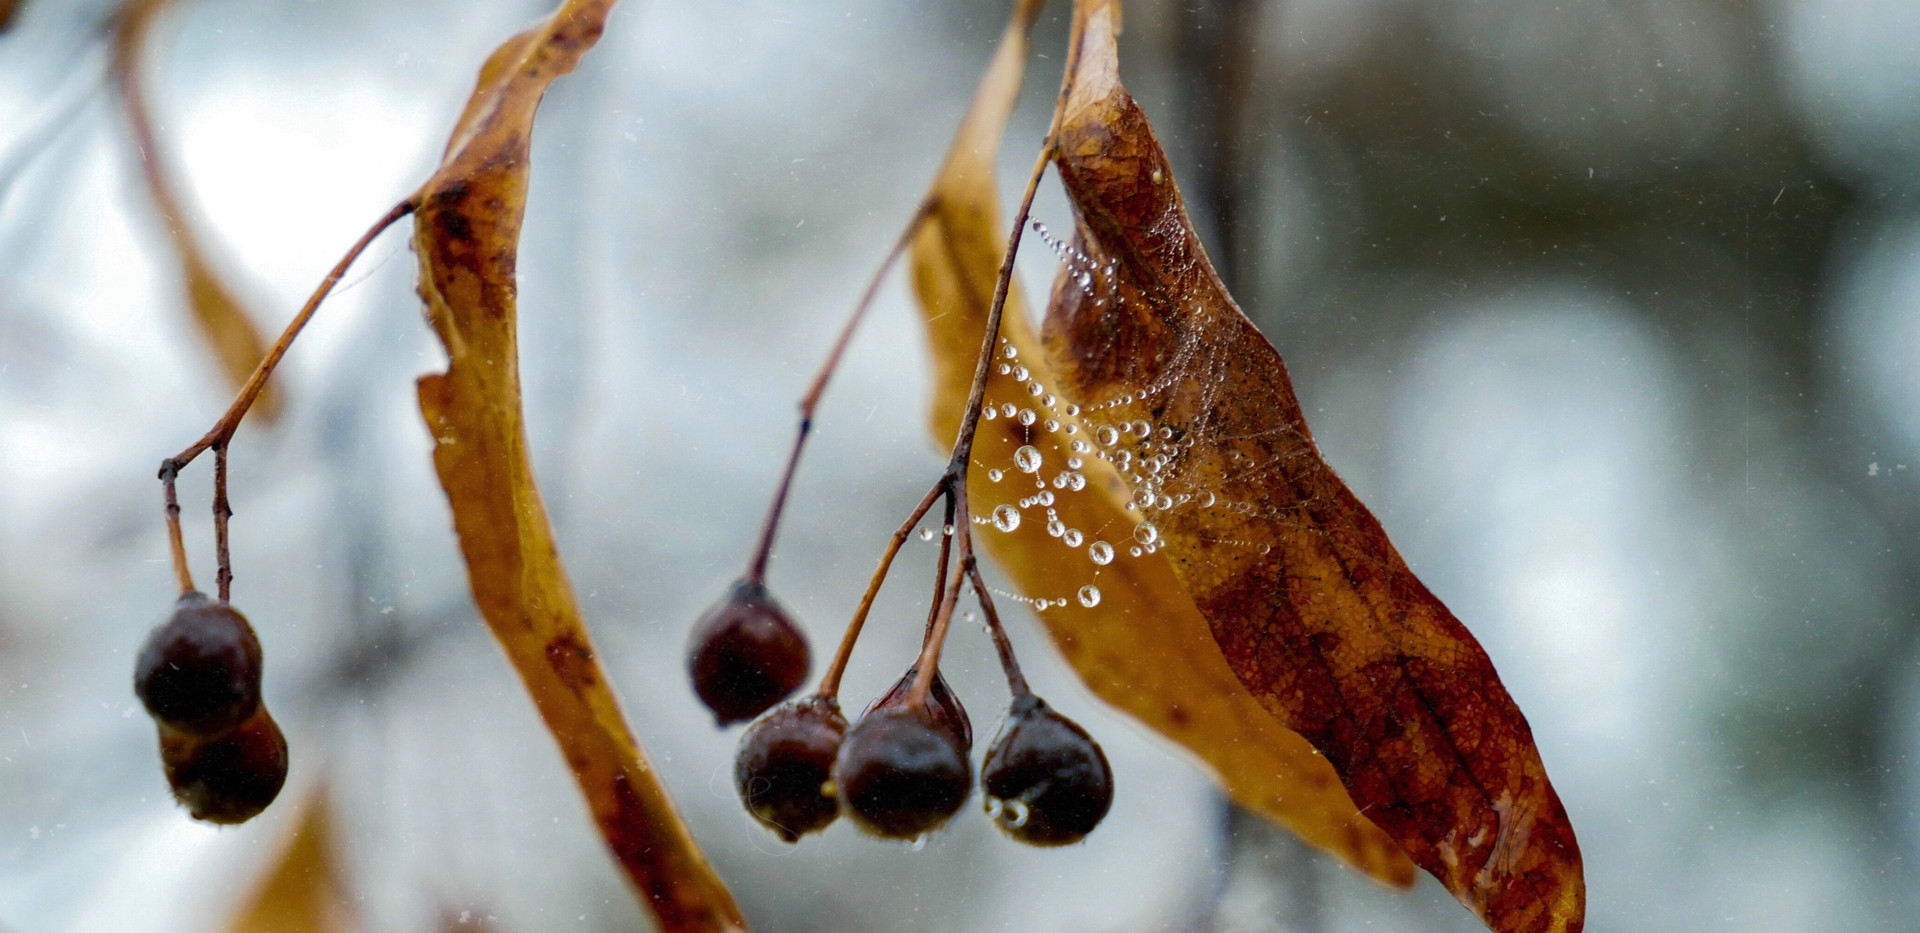 Raindrops on dried leaves